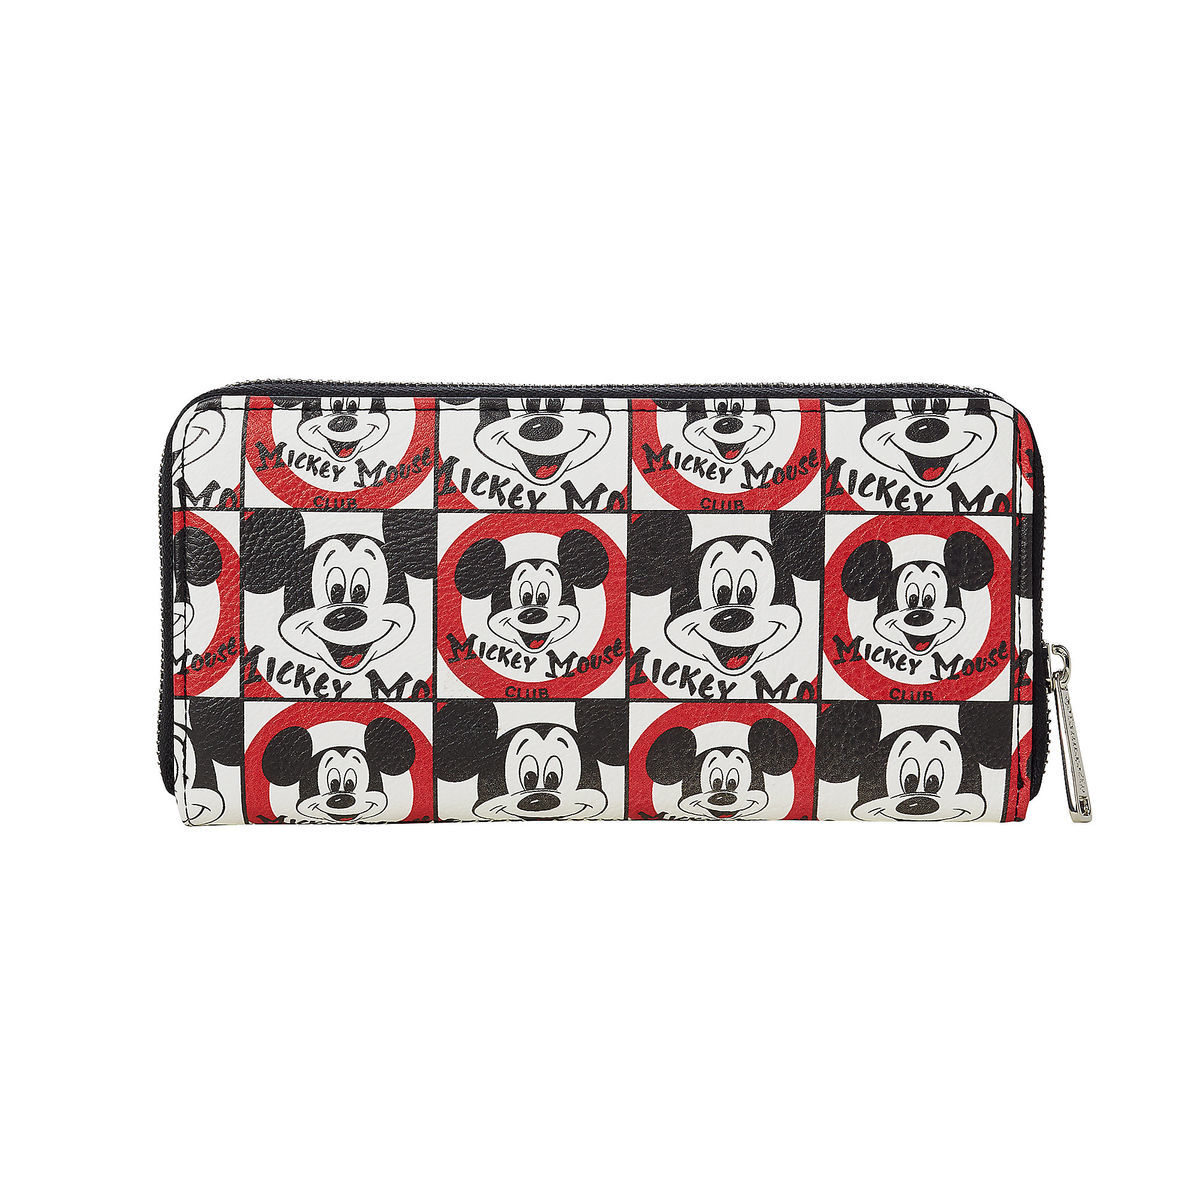 75dfbc0b021 Disney Loungefly Wallet - Mickey Mouse Club